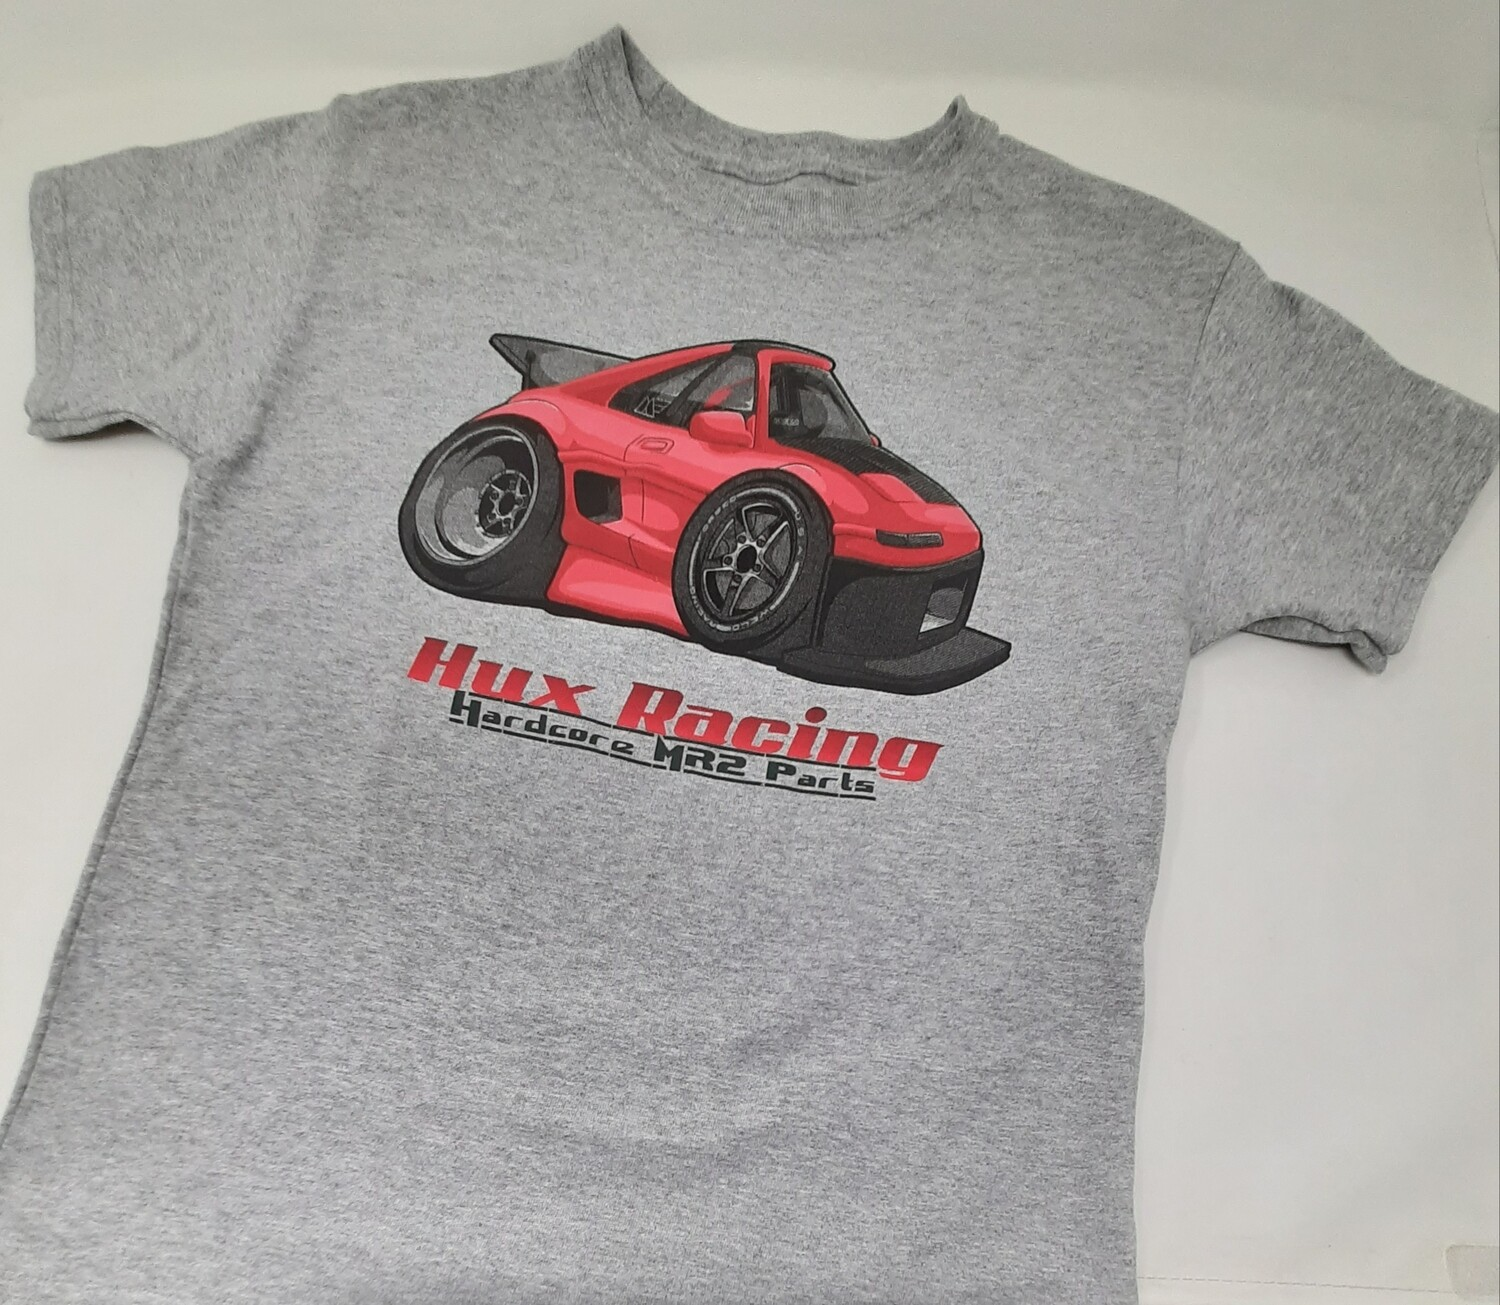 Car-Tooned Shirt Hux Racing